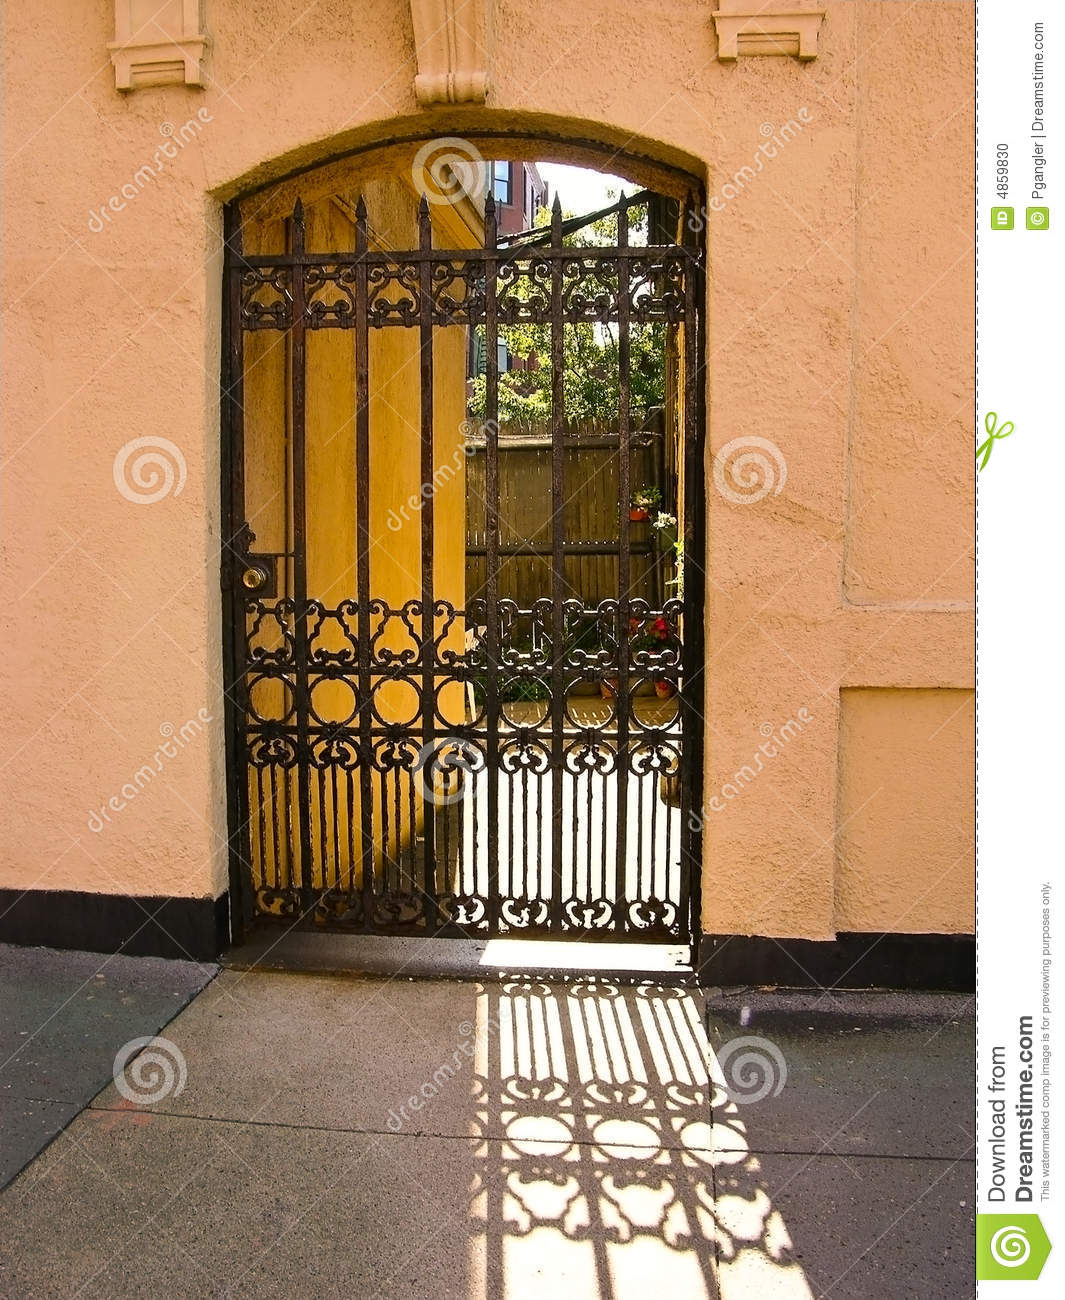 Foyer Hallway Urban Dictionary : Urban iron gate stock photo image